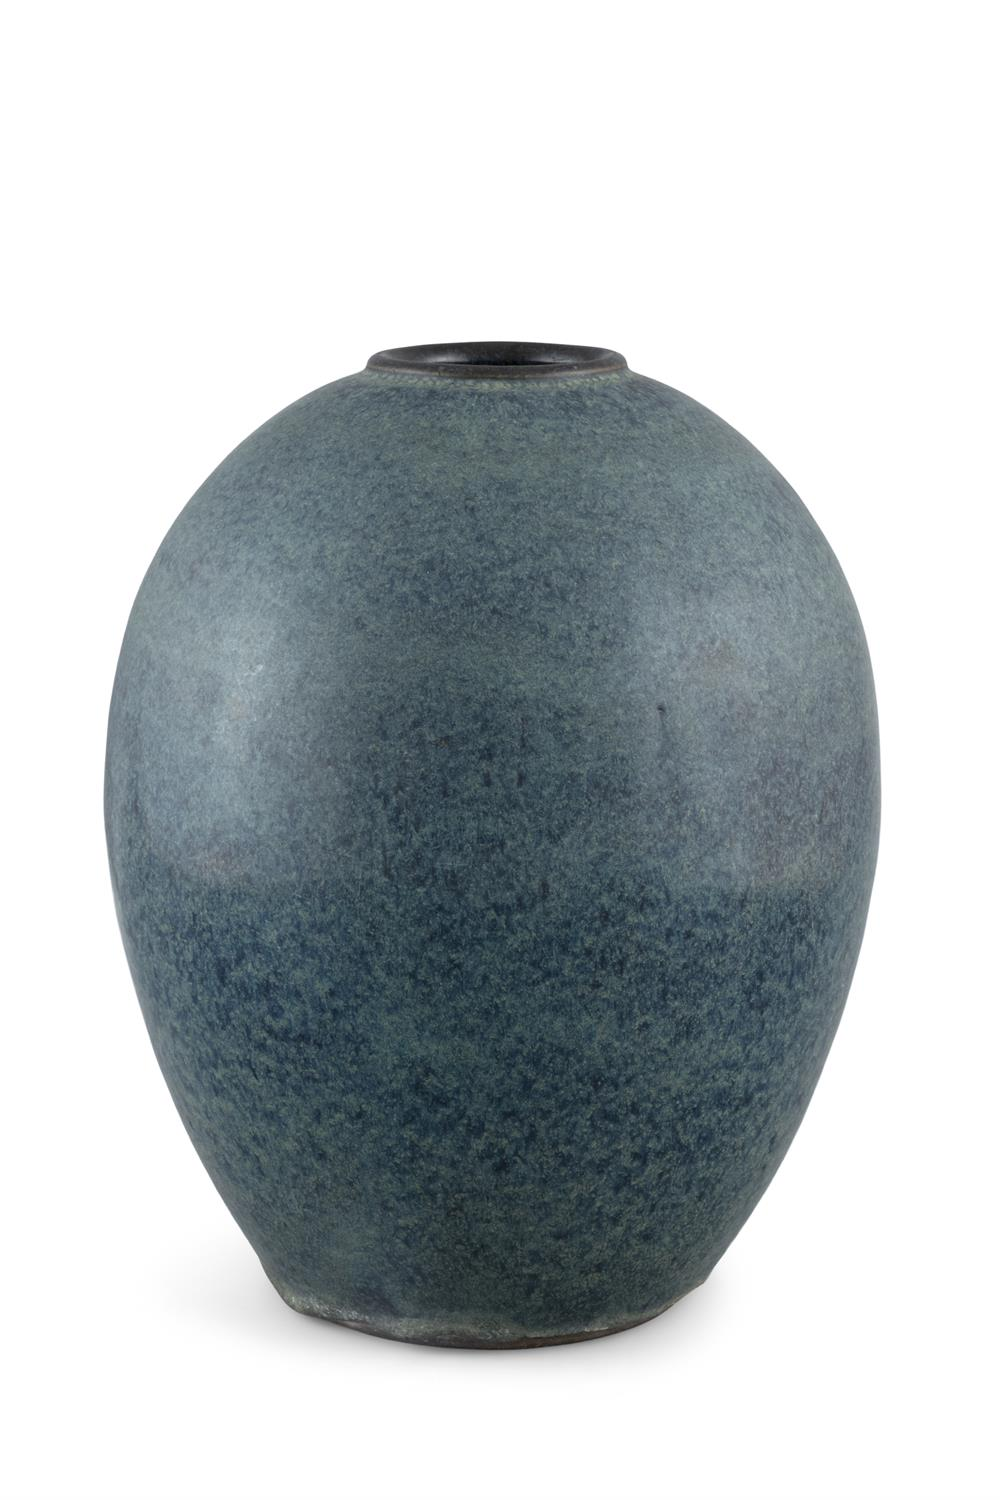 A ROBIN'S EGG GLAZED YIXING VASE BEARING THE SEAL OF GE MINGXIANG 葛明祥 China, 18th century or later - Image 6 of 15